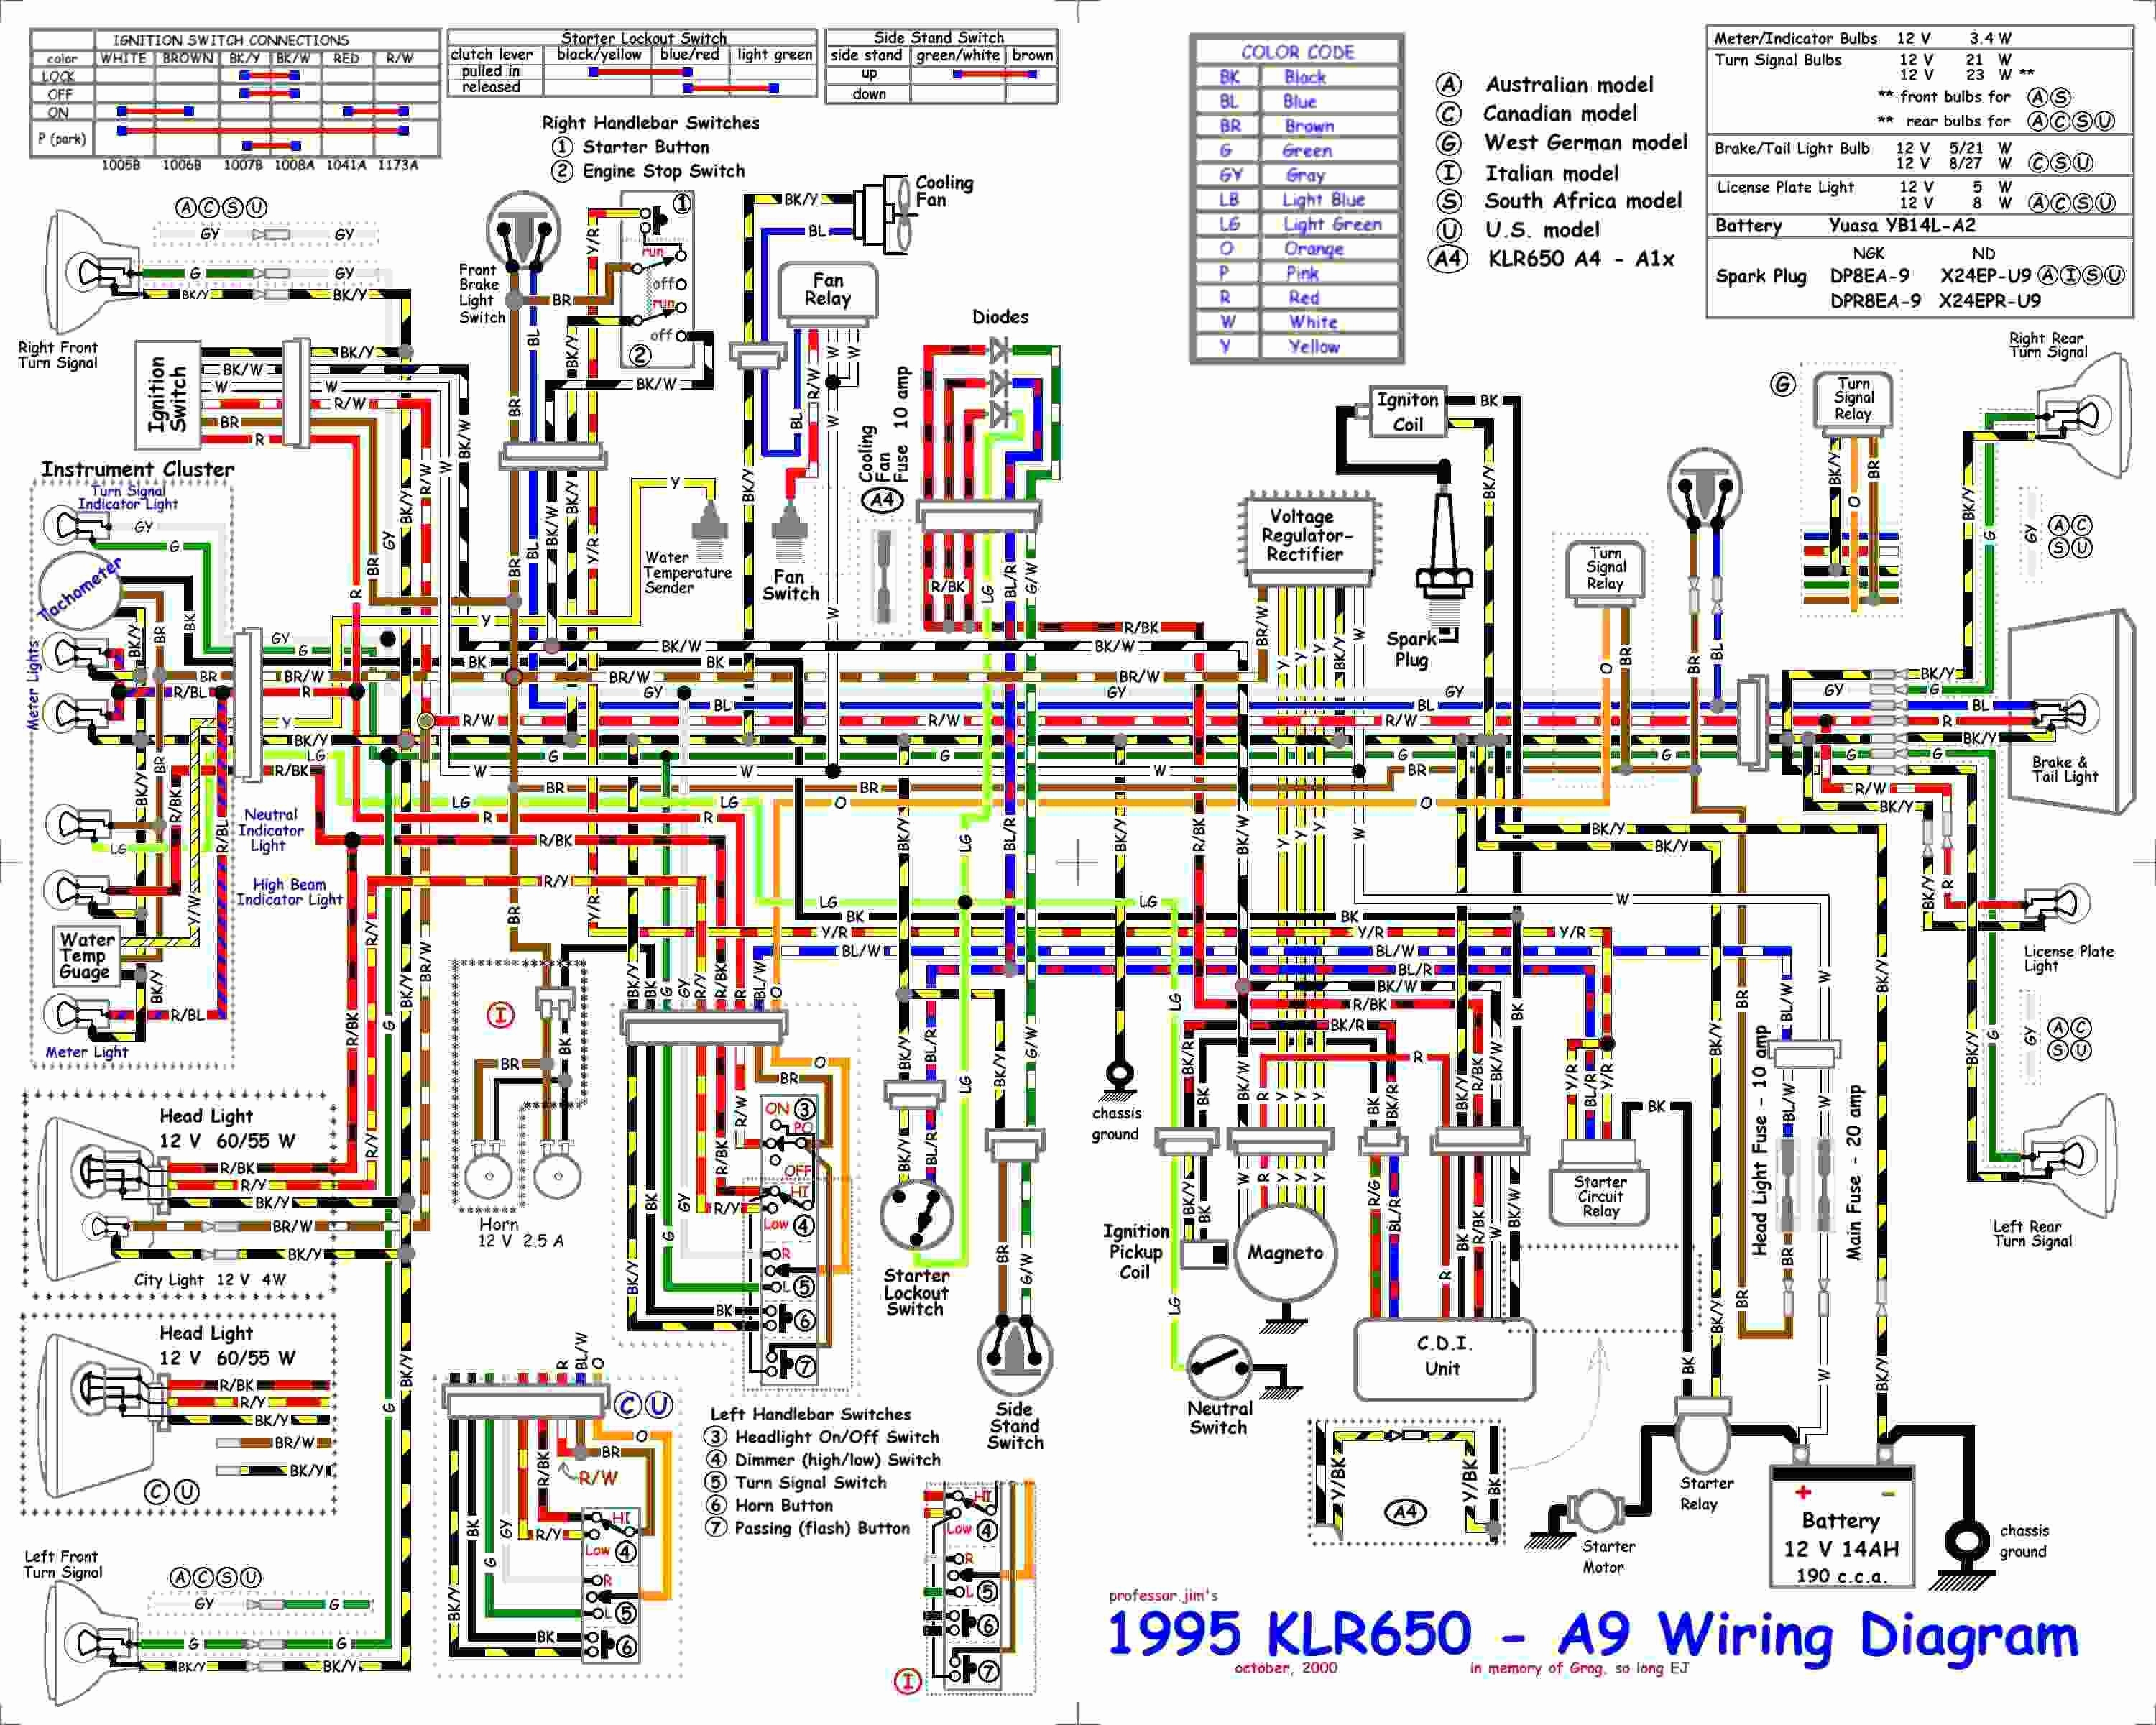 2000 Chevy Silverado Wiring Diagram Color Code Best Of Gmc Trailer - 2000 Chevy Silverado Wiring Diagram Color Code